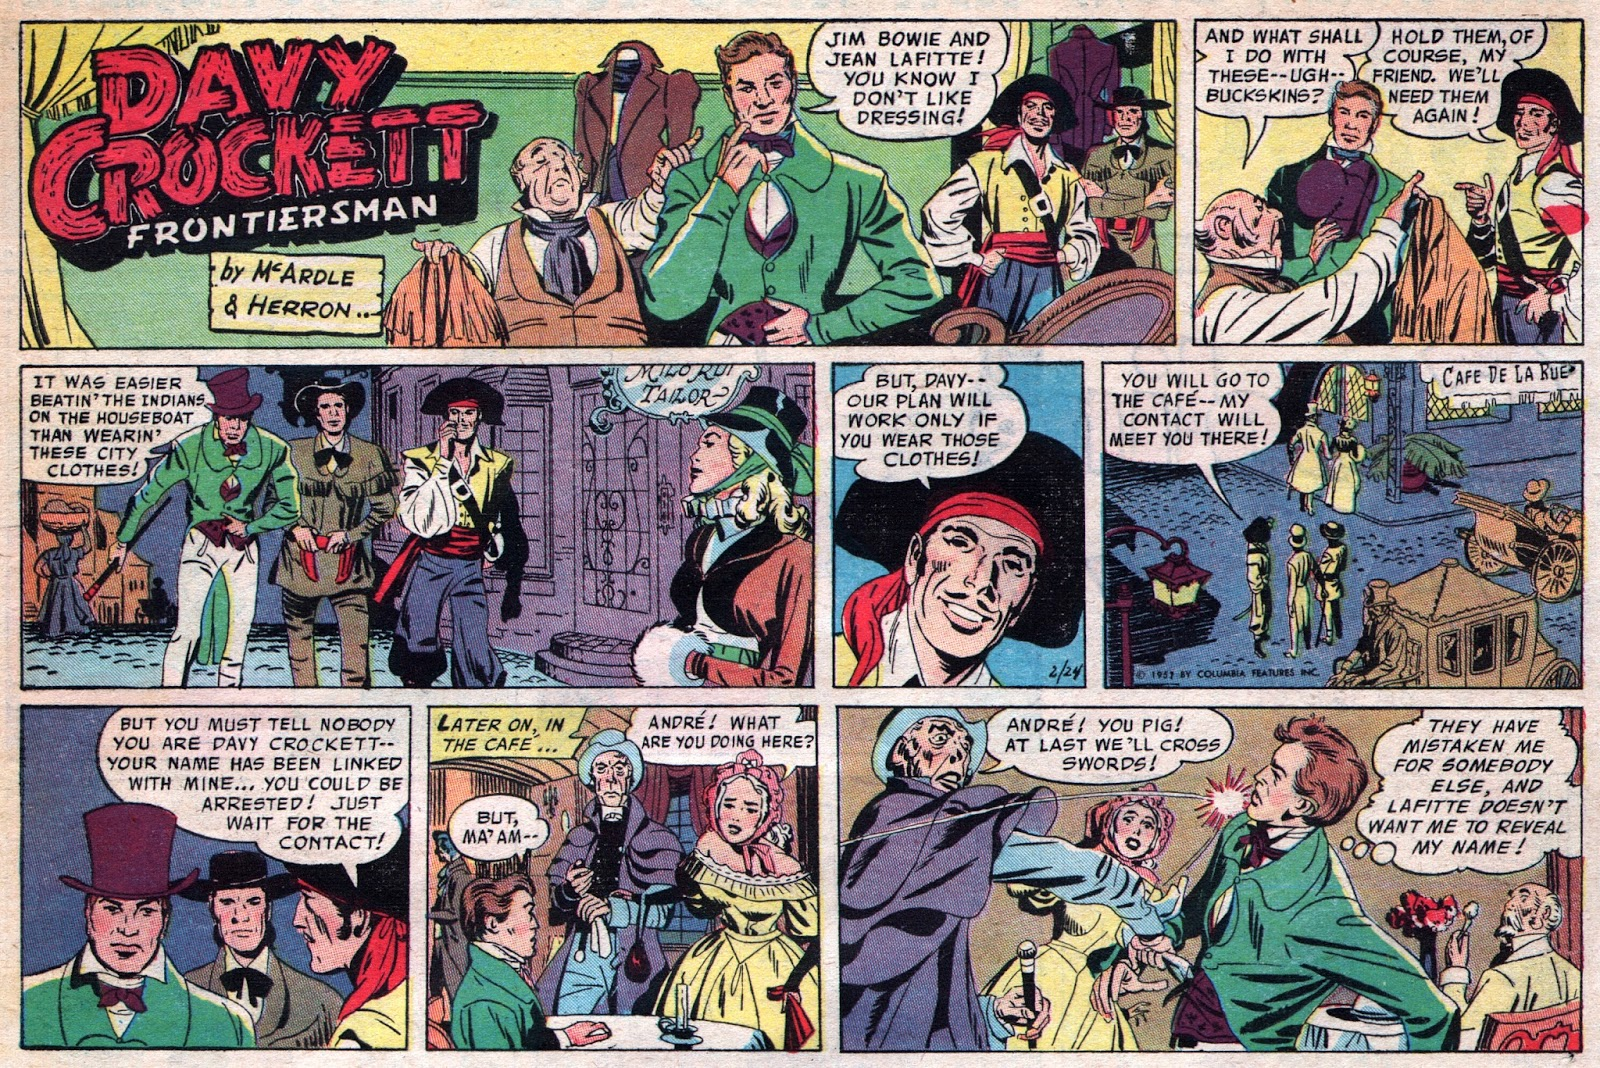 24 February 1957 Davy Crockett, Frontiersman Sunday strip